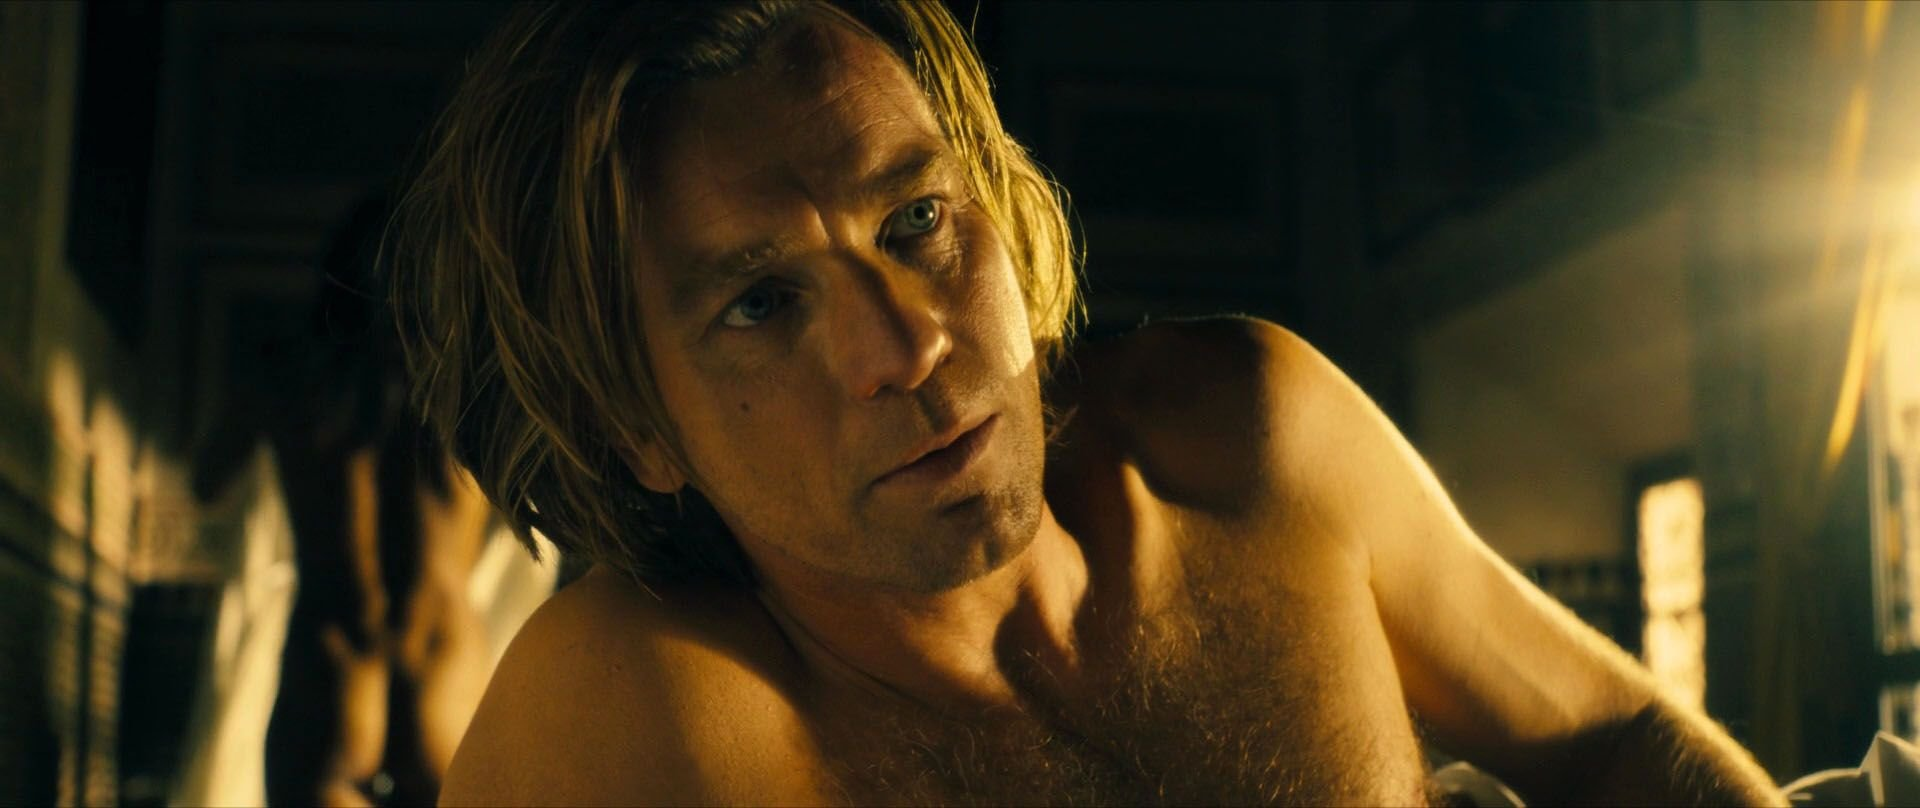 harris nude our kind of traitor 2016 hd 1080p thefappening